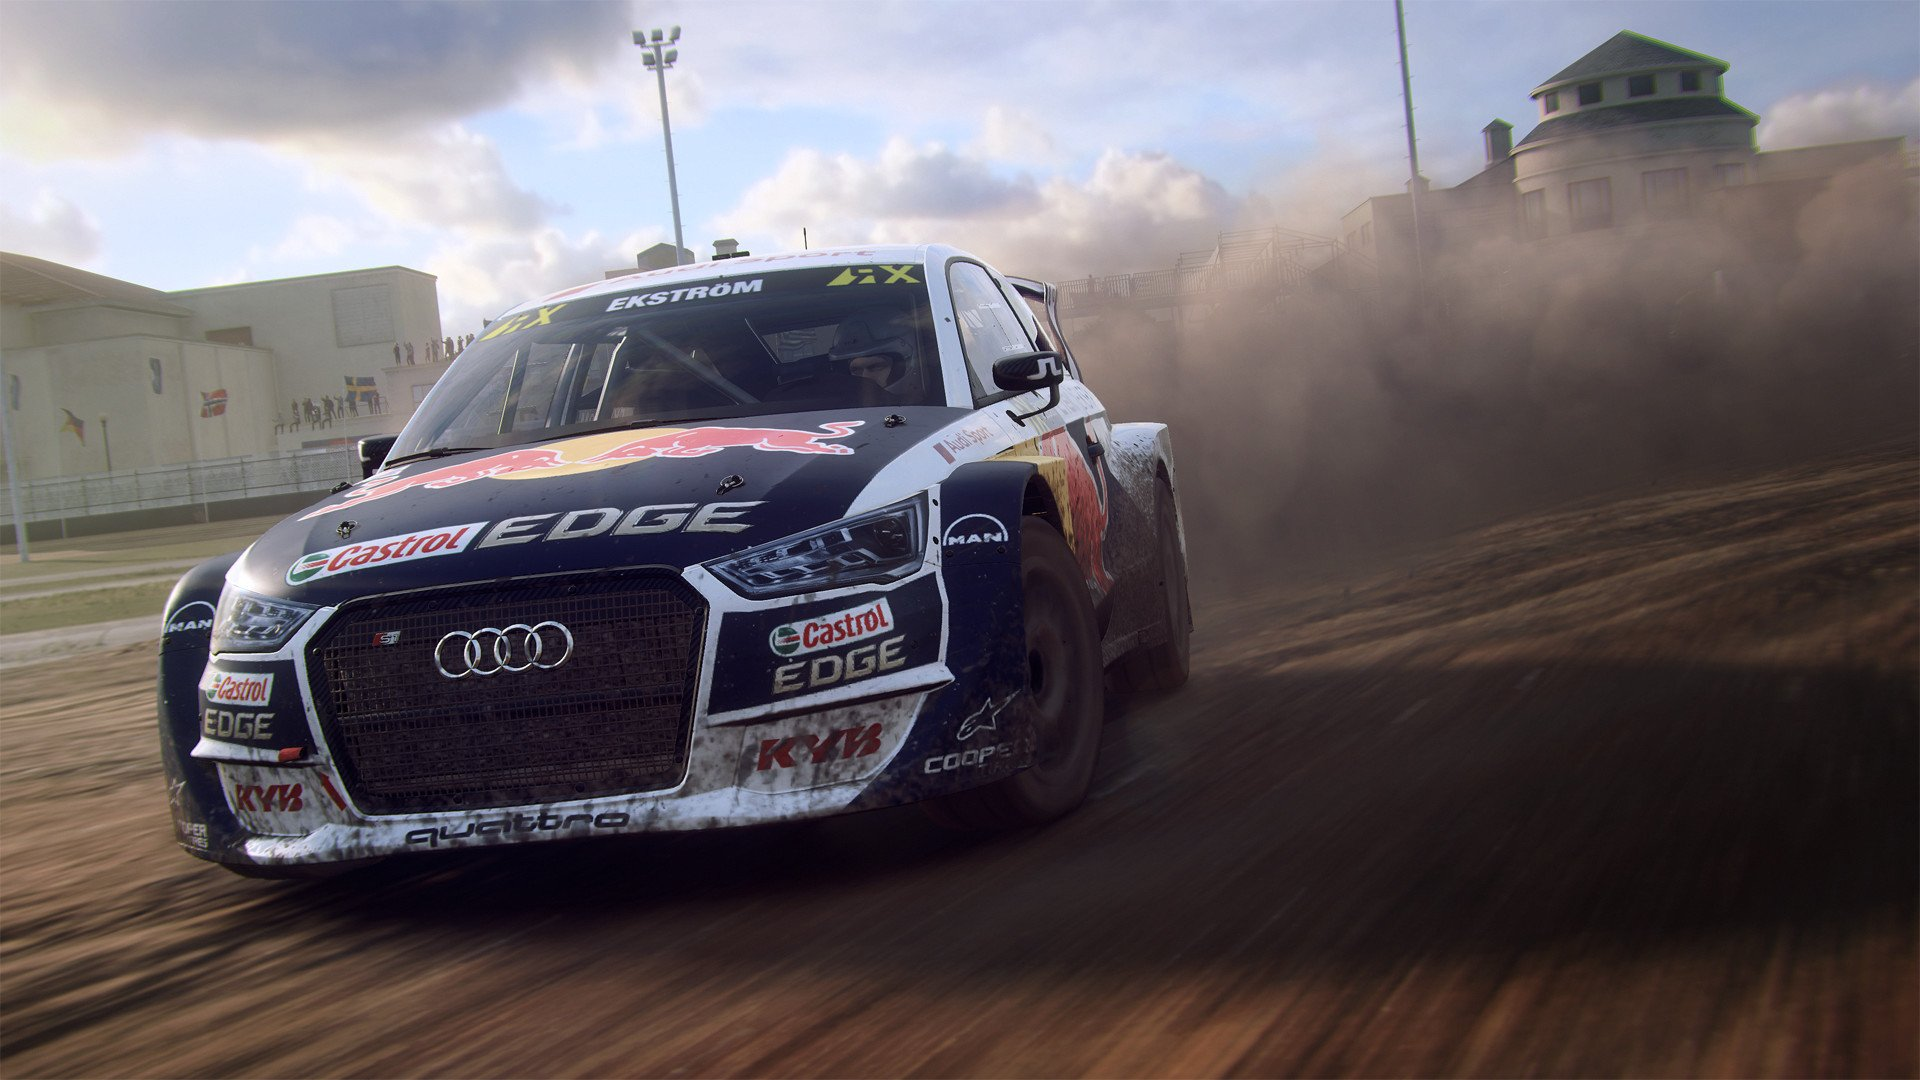 Buy Dirt Rally 20 Pc Game Steam Download Wallet 12k Activation And Via Full Details Will Be Specified In The Email After Purchase